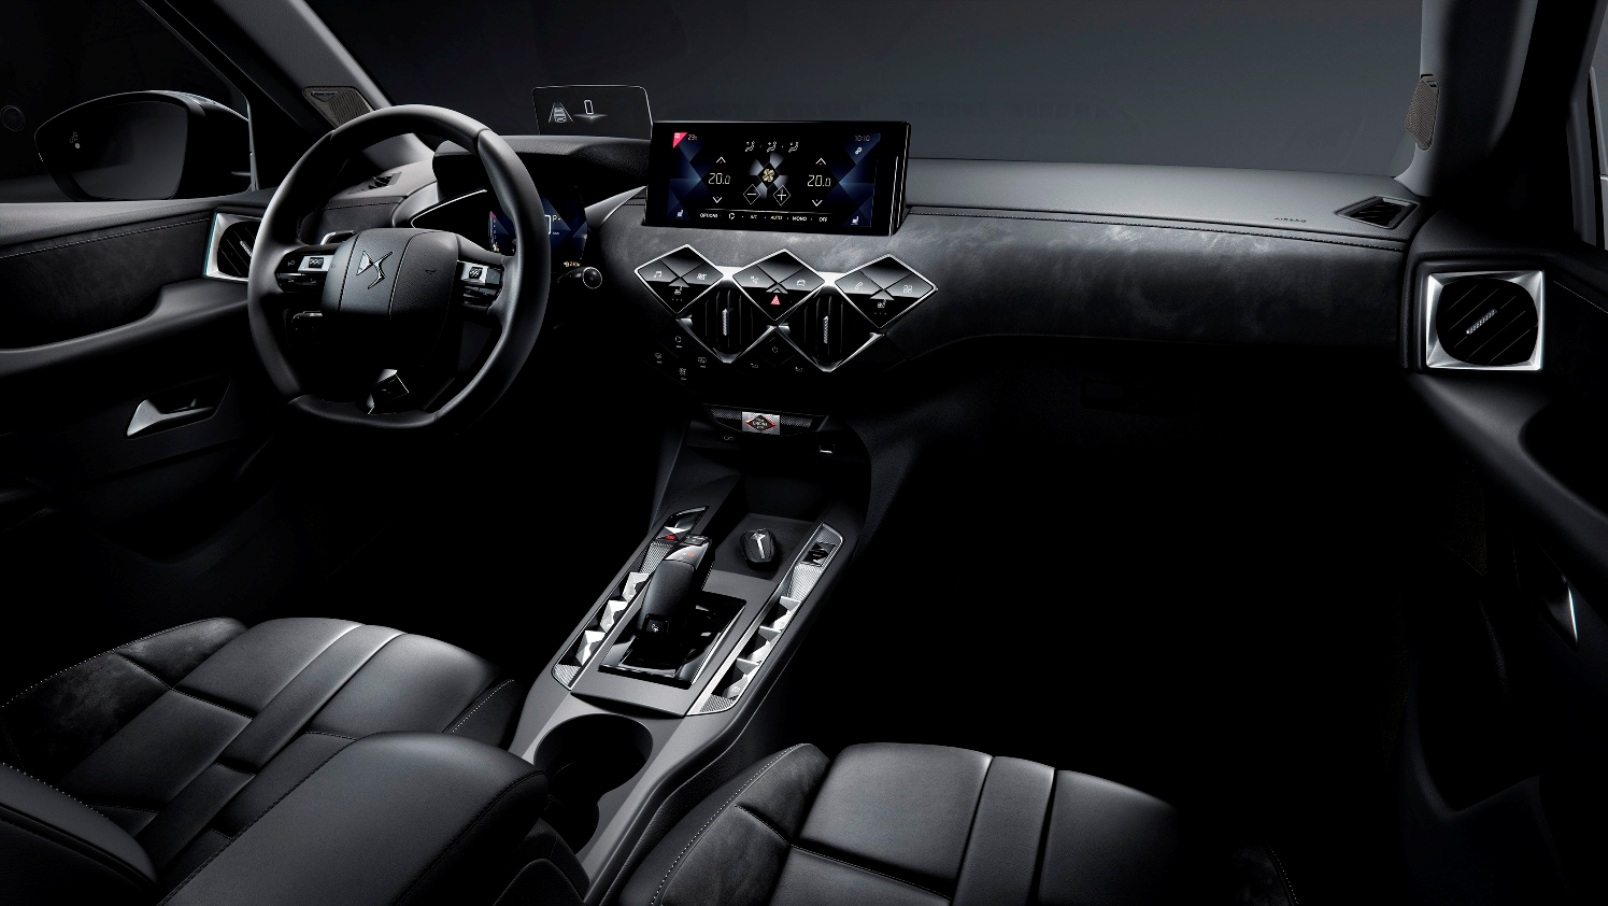 Ds 3 Crossback (3)